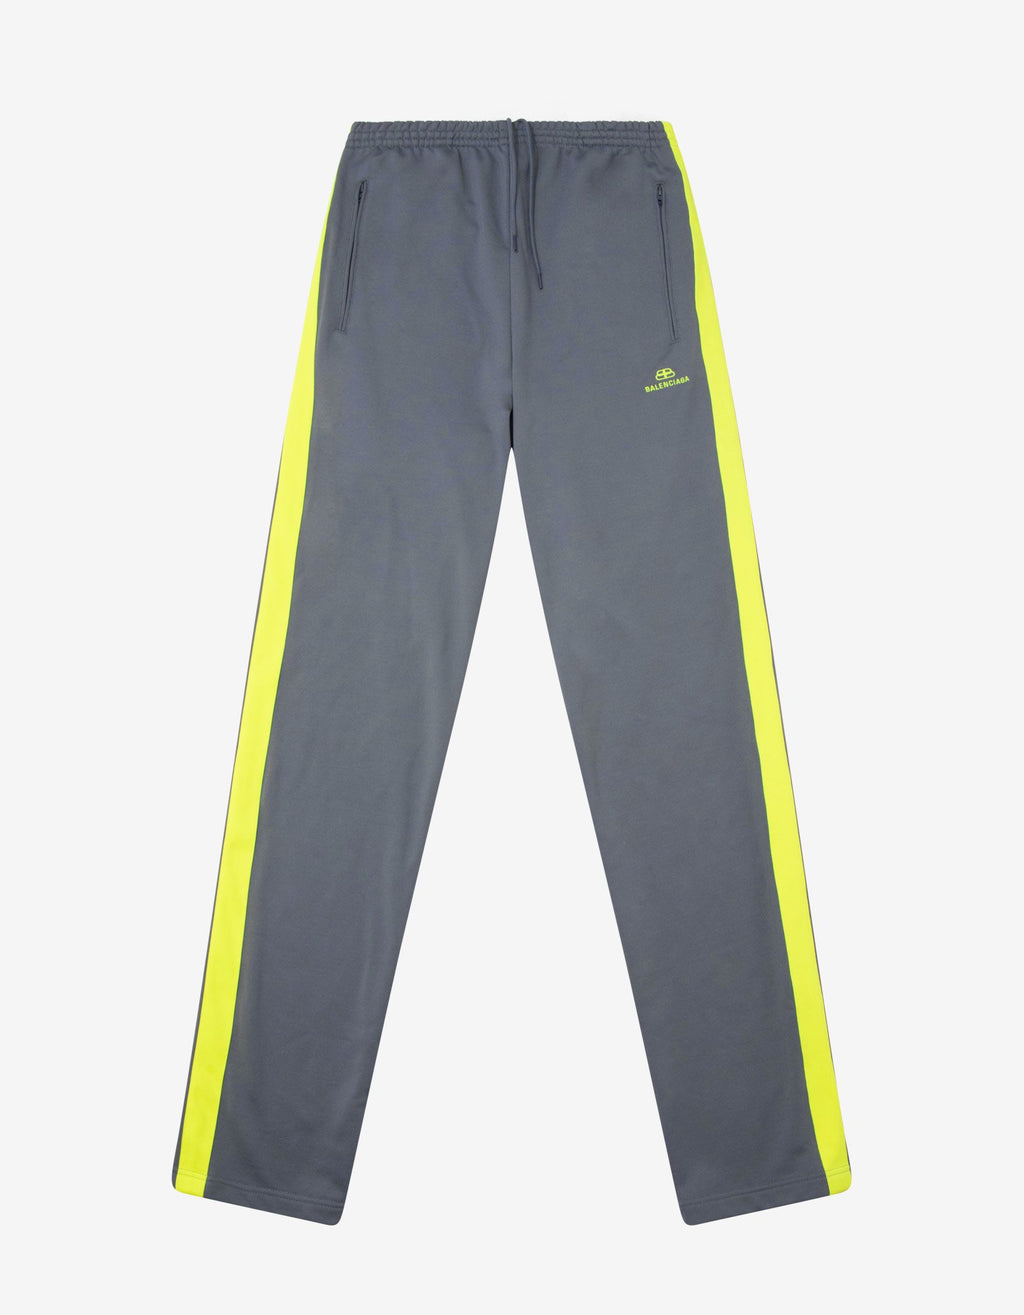 Grey Track Pants with Yellow Stripes -